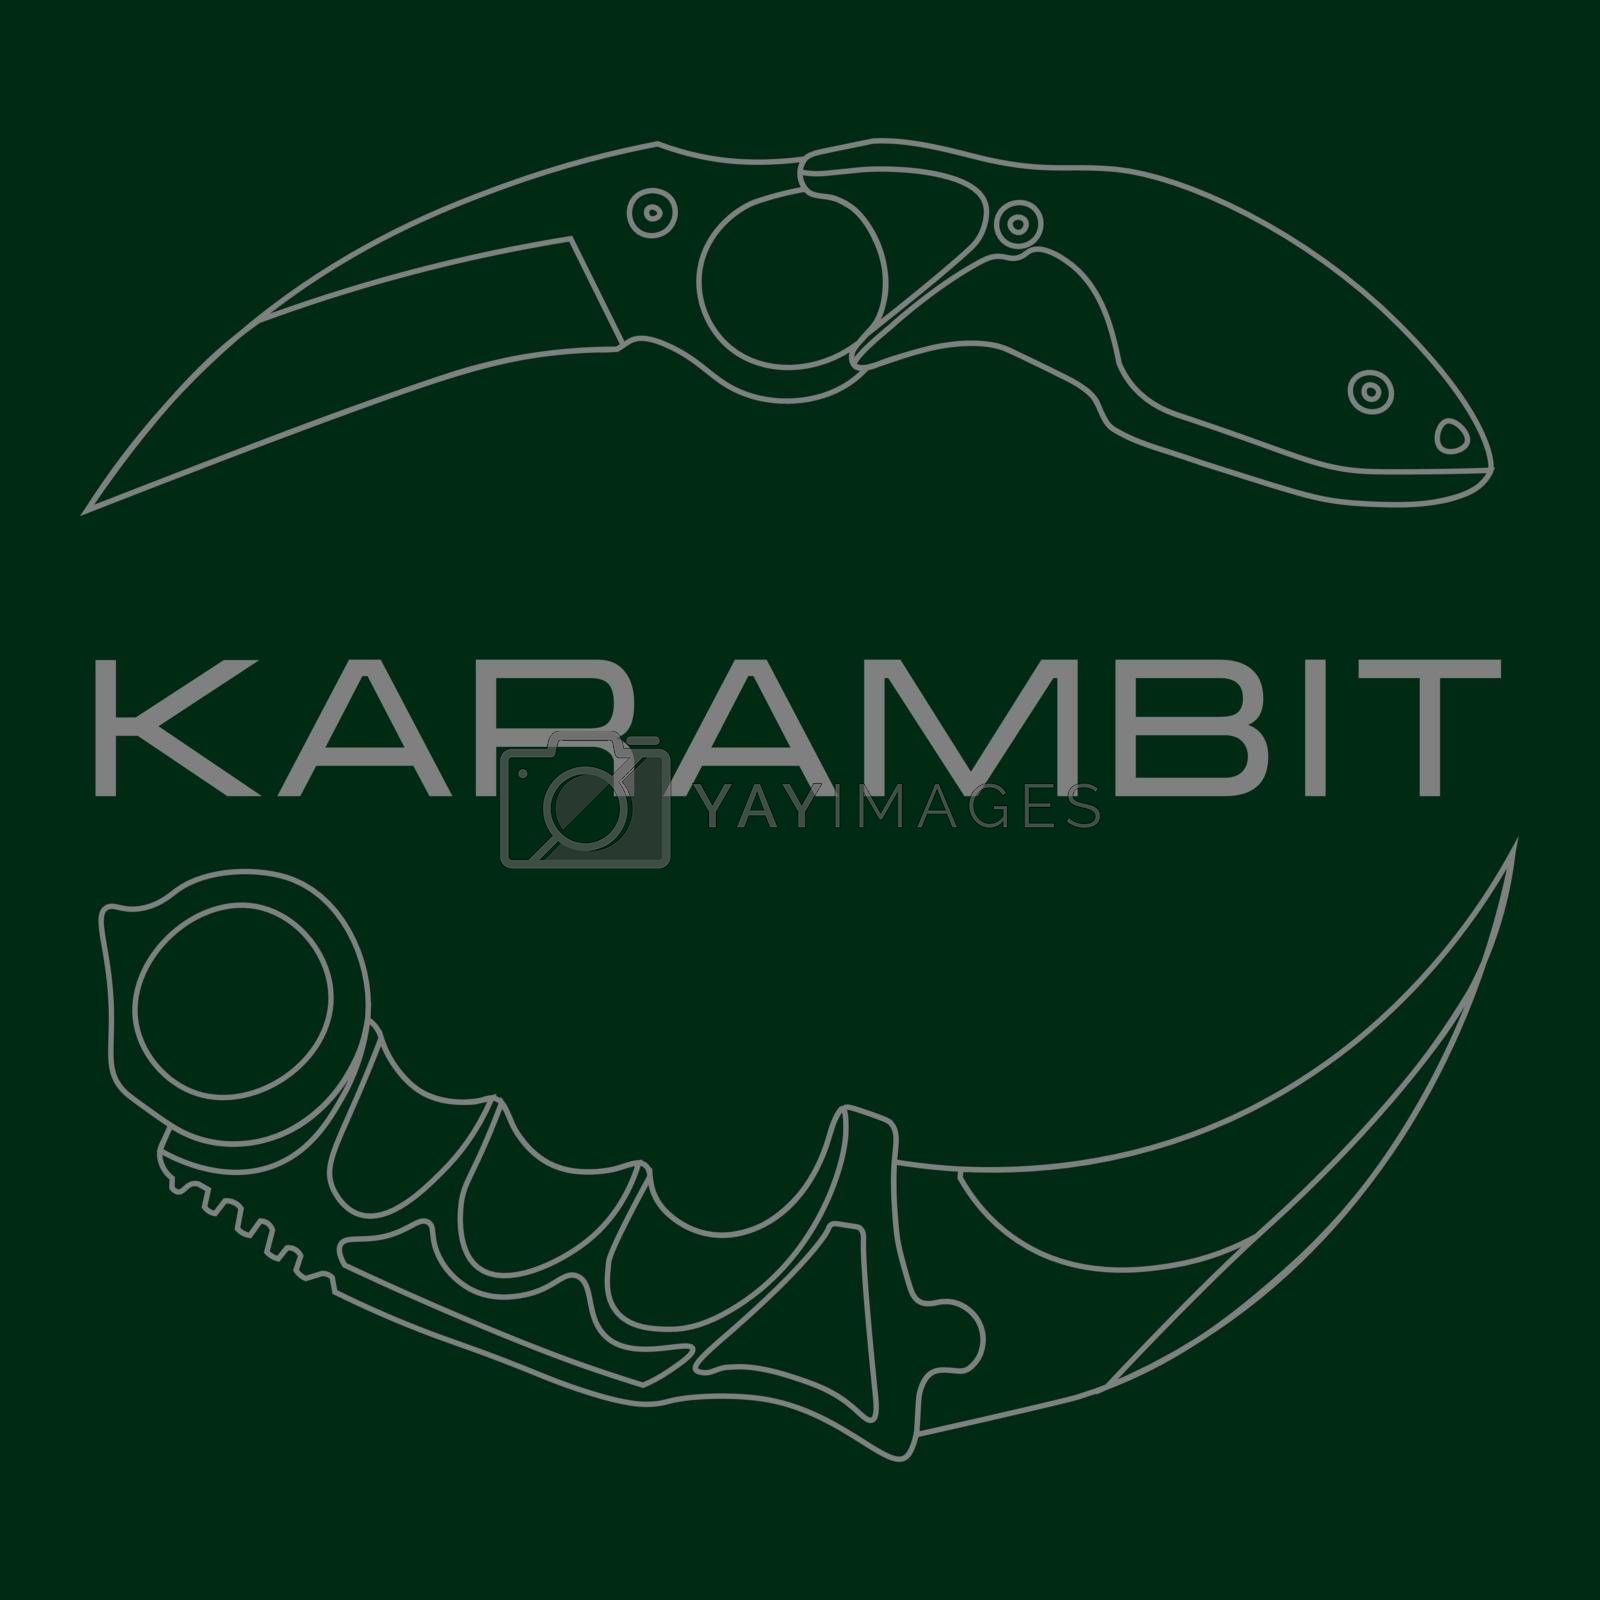 Grey contour sketch illustration of two tactical pocket knives karambits on green background